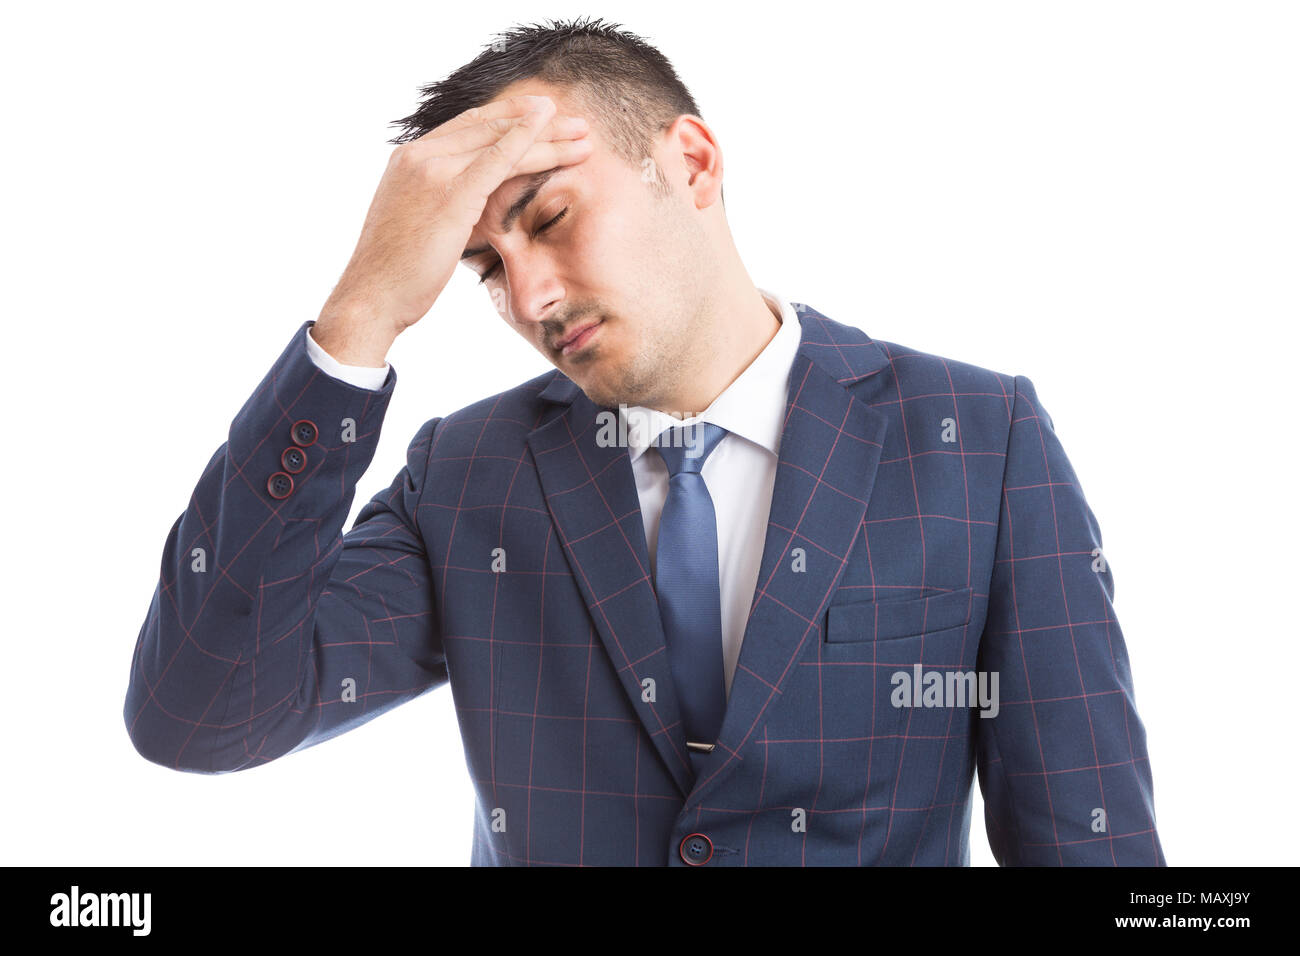 Business person suffering migraine after stressful job grabbing forehead as hangover dizziness concept - Stock Image